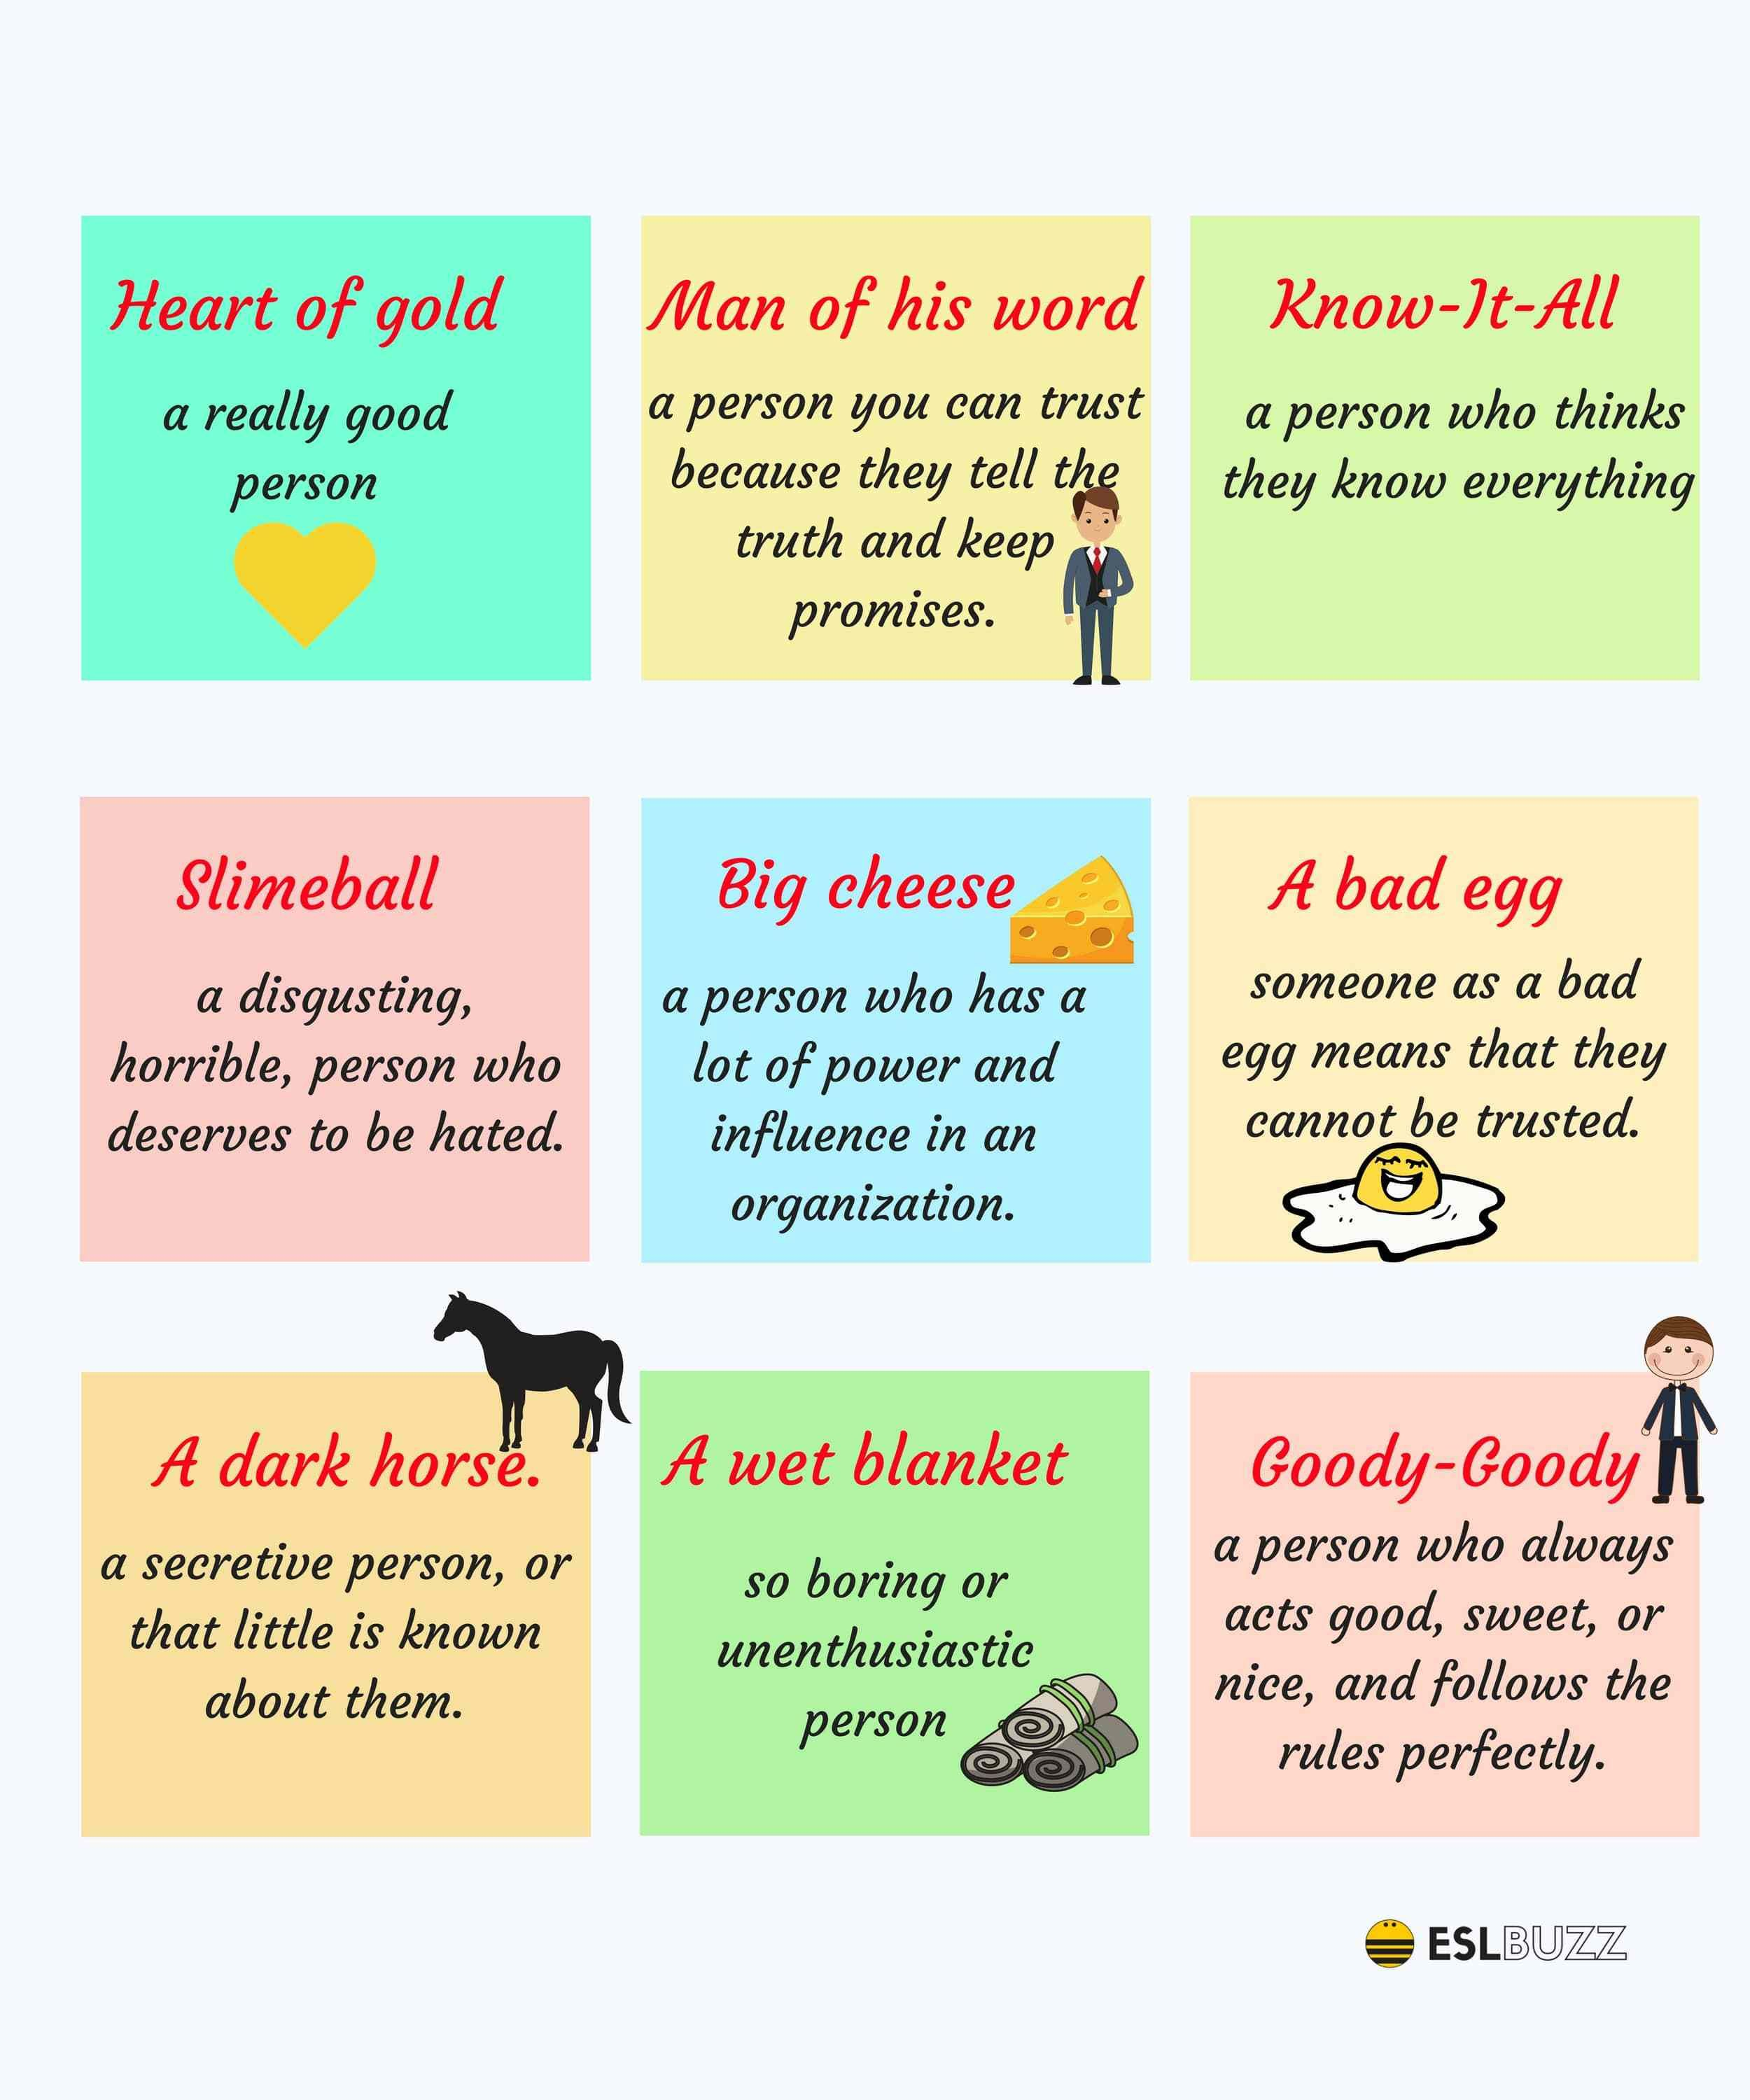 25 Common Idioms To Describe People In English